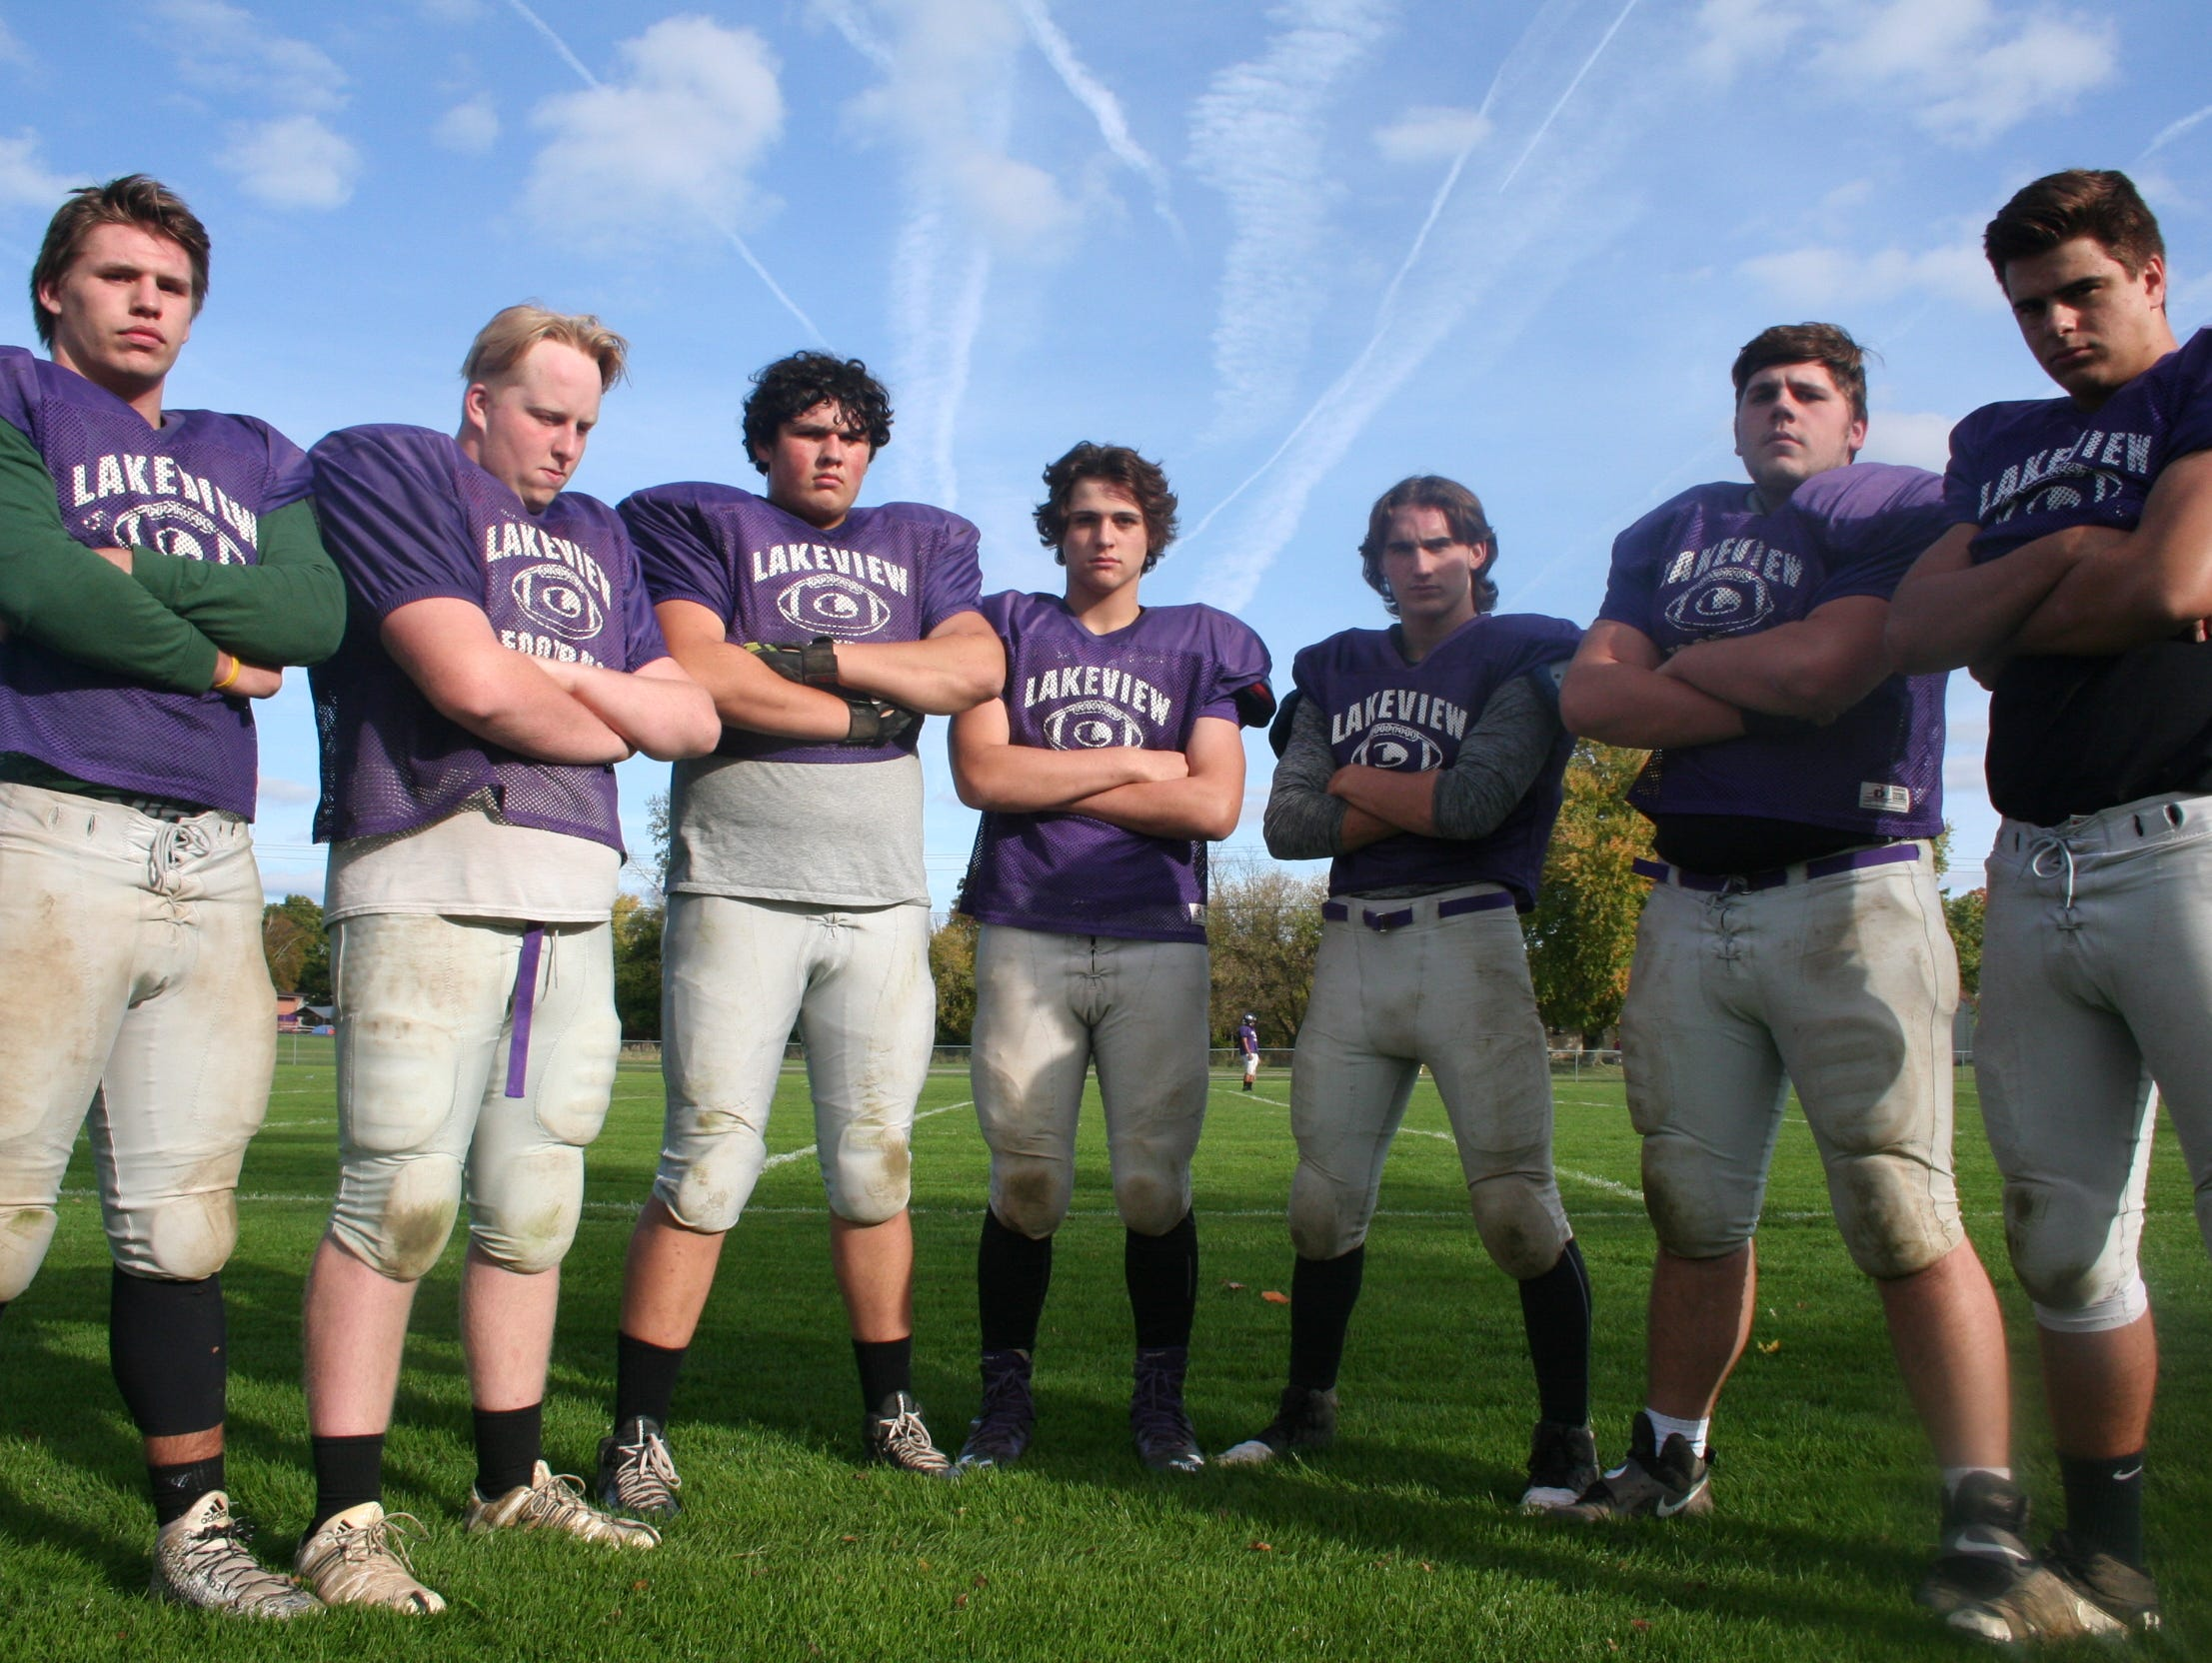 Lakeview's offensive line, from right, Michael Miller, Logan Stallings, Maccabee Barrett, Jordan Loss, Cameron Wirtz, Aiden Booton and Steven Laws.